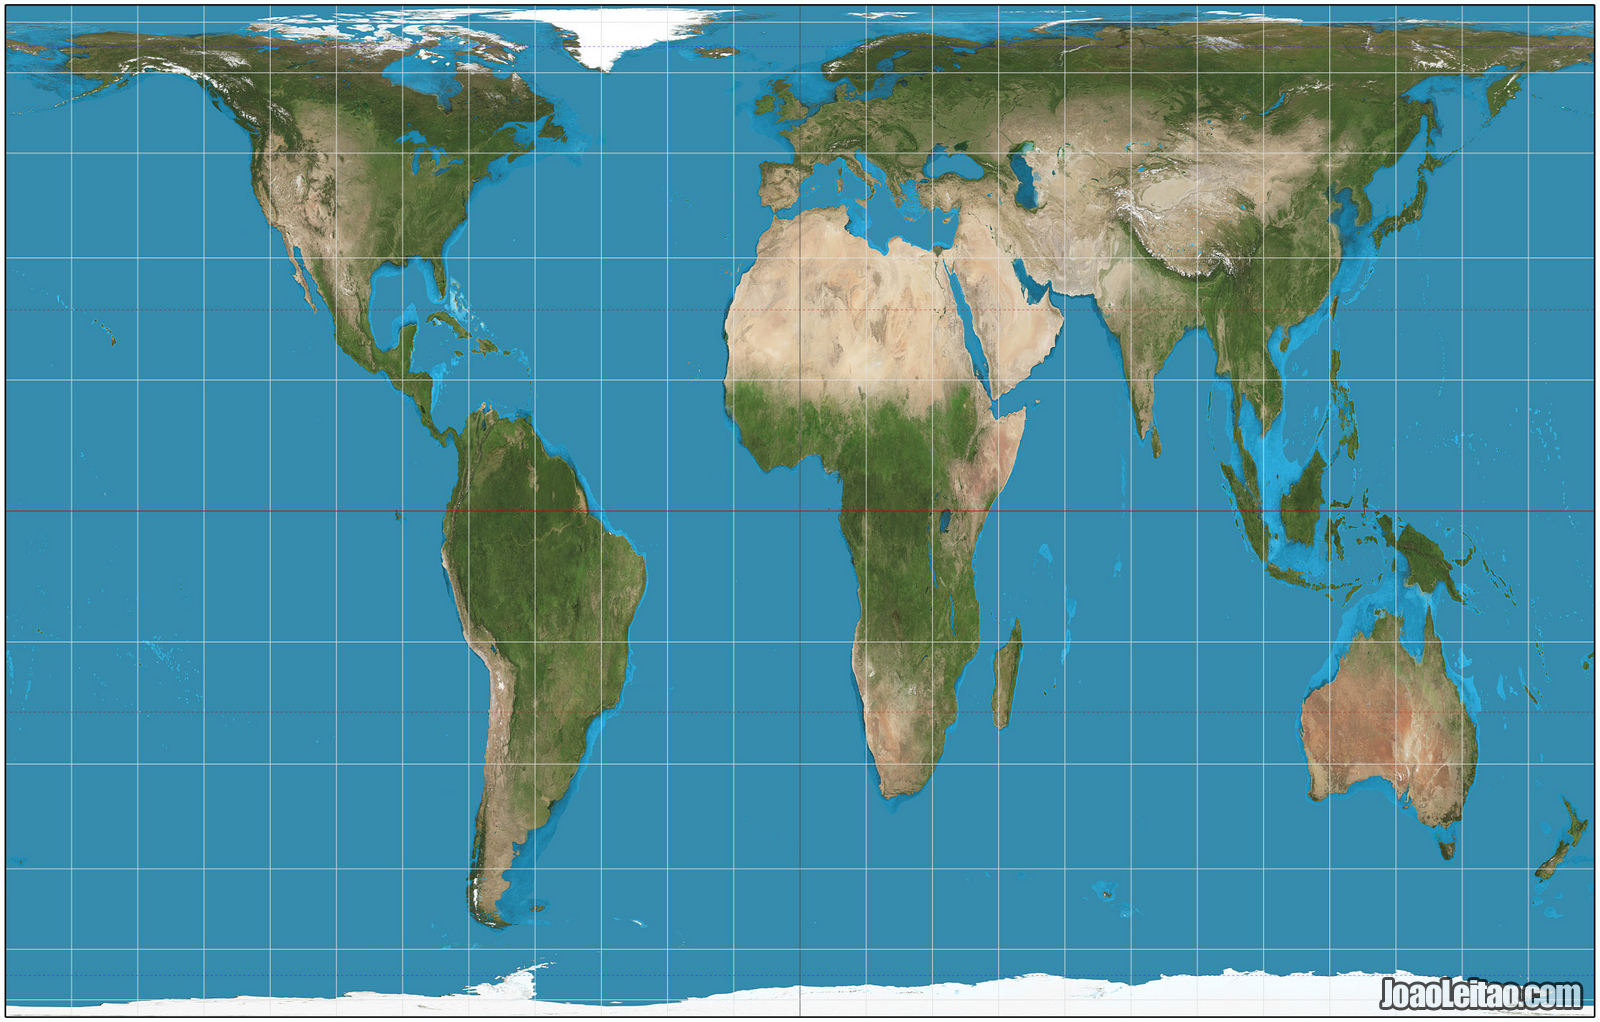 World map with the Peters projection